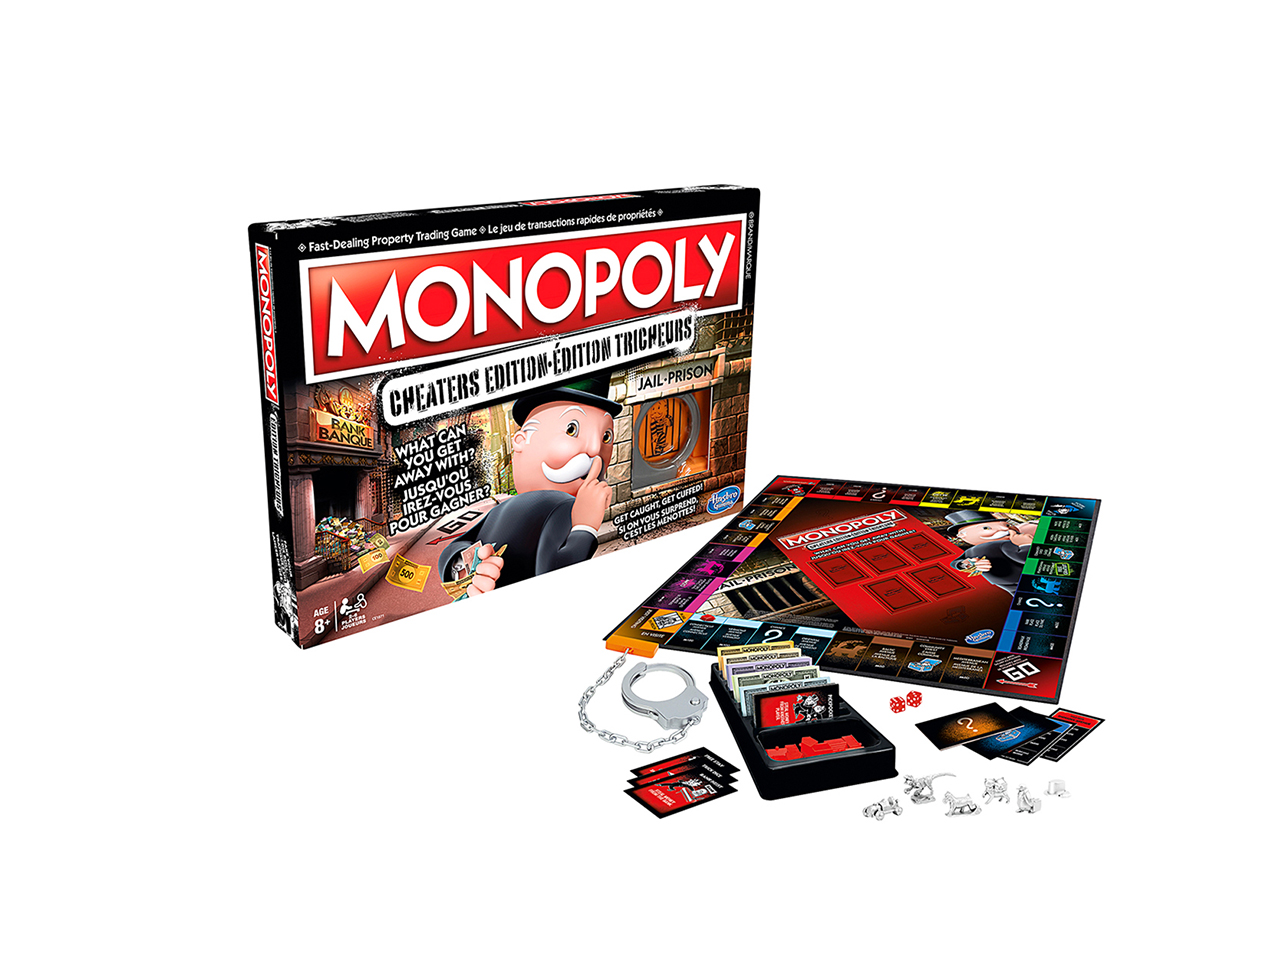 Monopoly Cheaters Edition Game: Packaging and board game set up